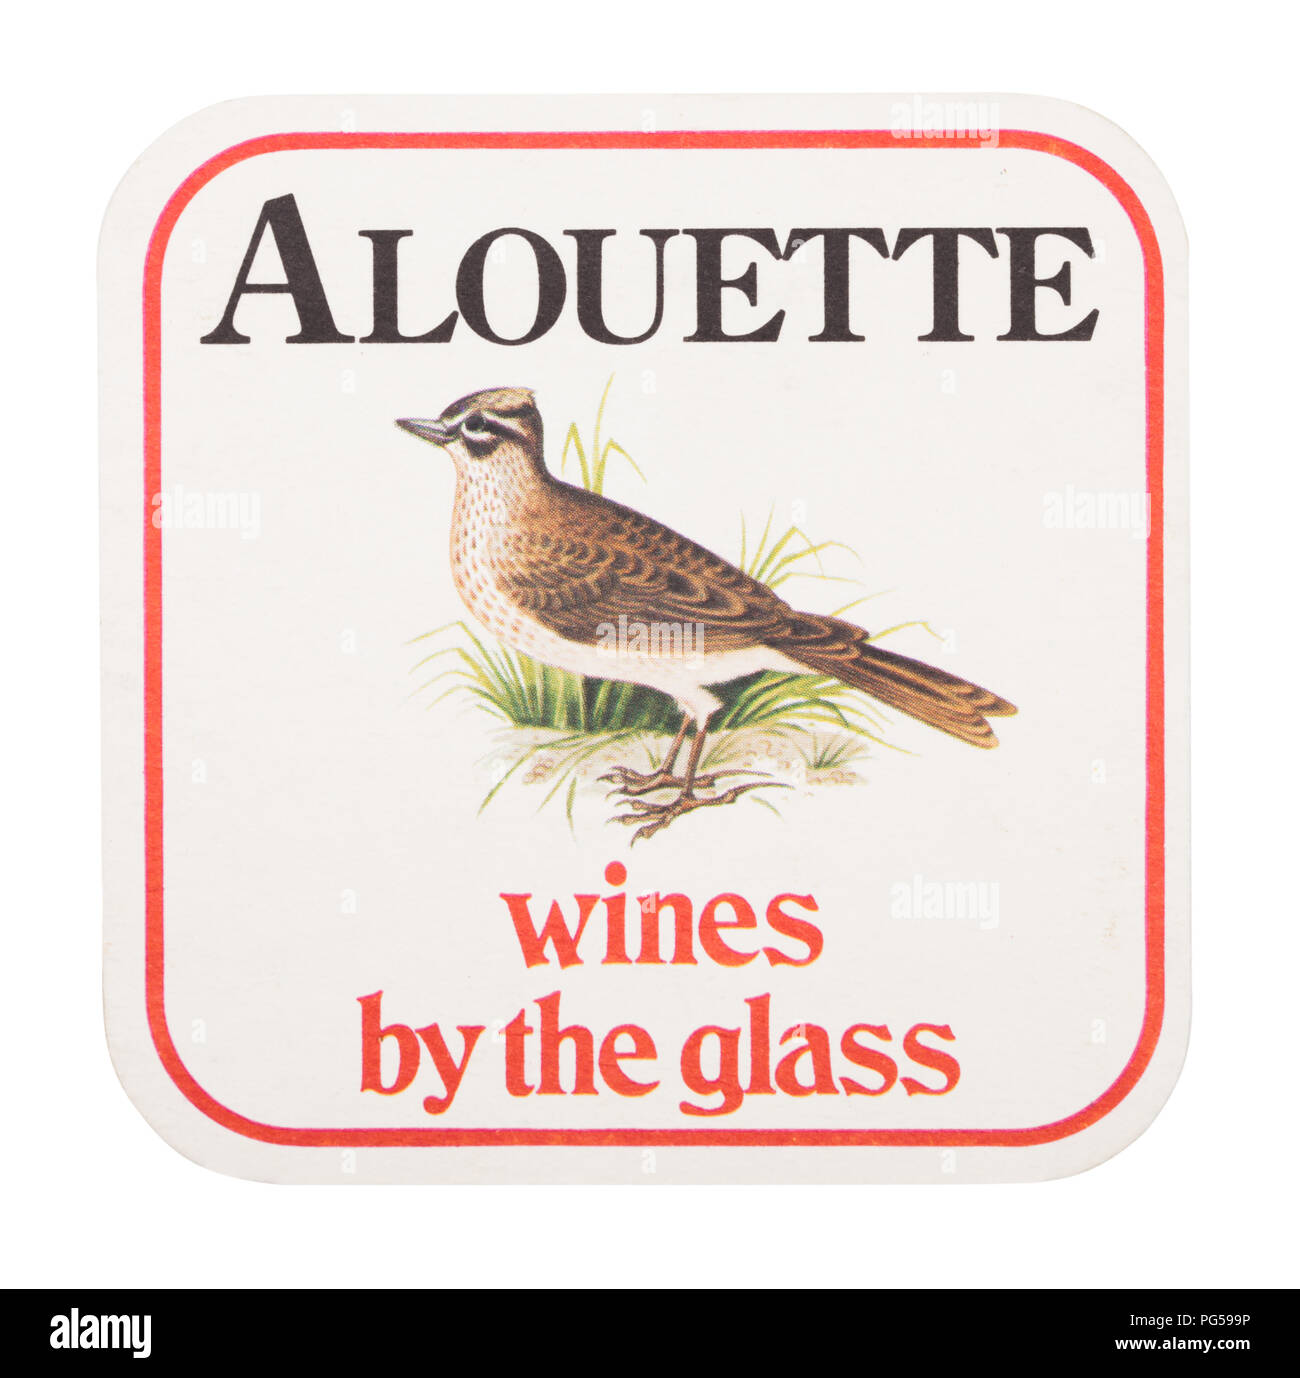 LONDON, UK - AUGUST 22, 2018: Alouette wines by the glass paper mat coaster isolated on white background. - Stock Image